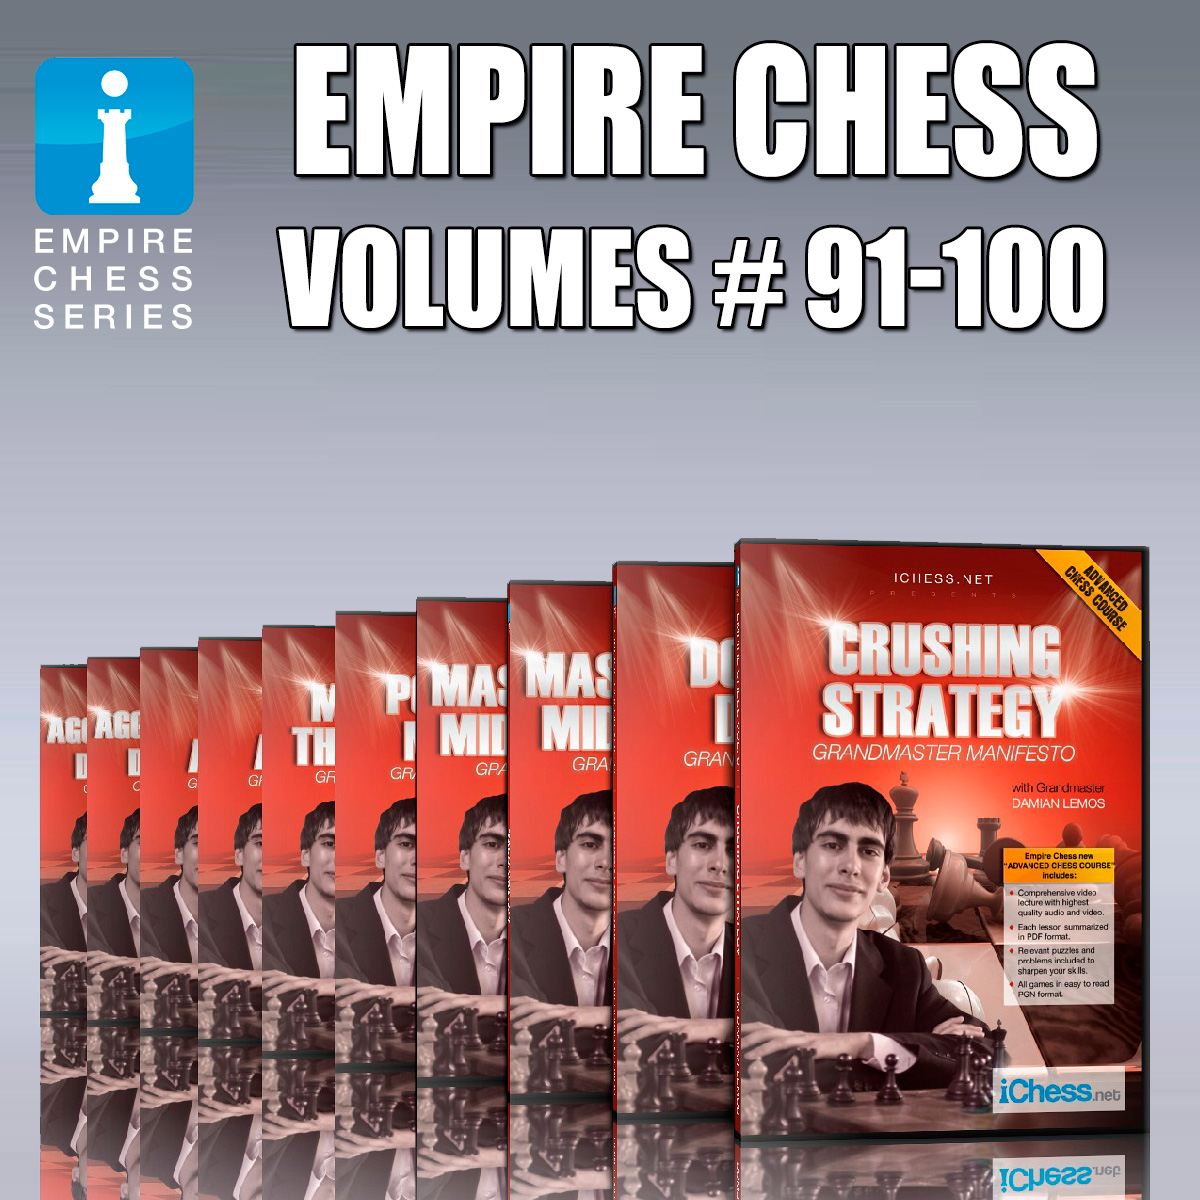 Empire Chess 91-100 - The Grandmaster Manifesto